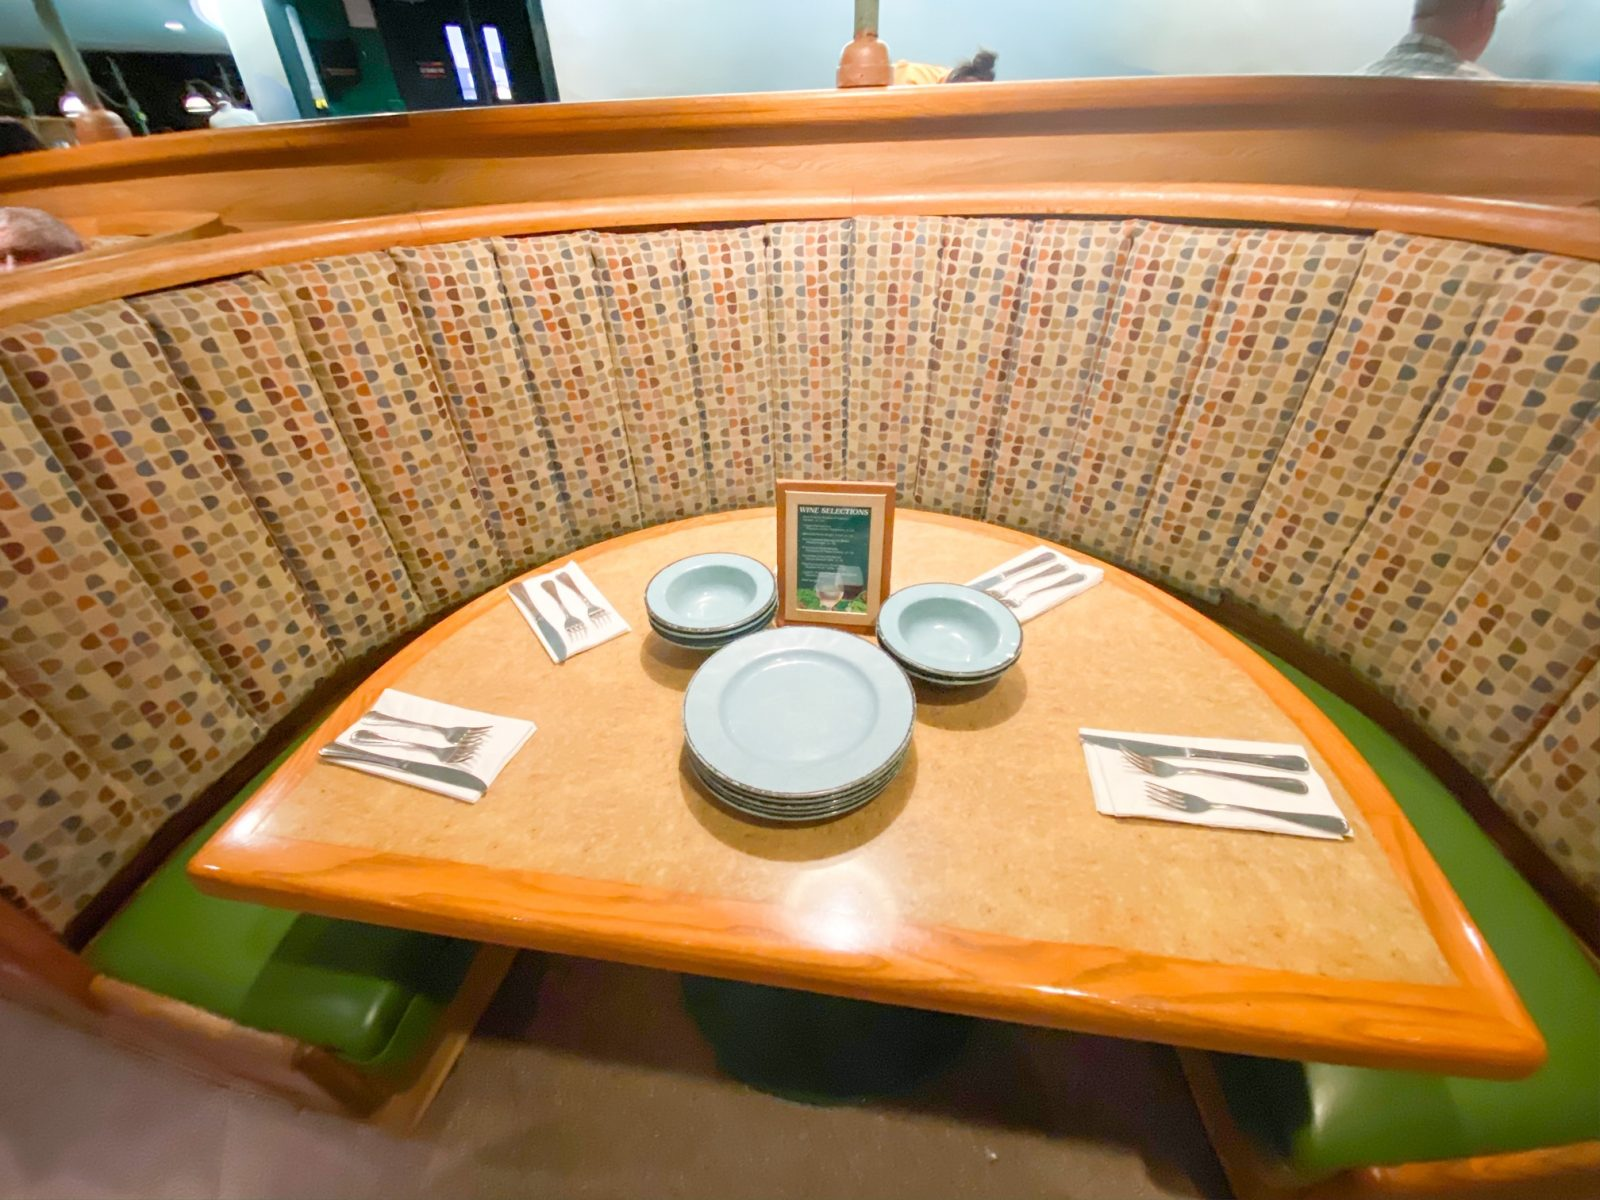 table with Mickey Shaped plates at Epcot's Garden Grill Restaurant